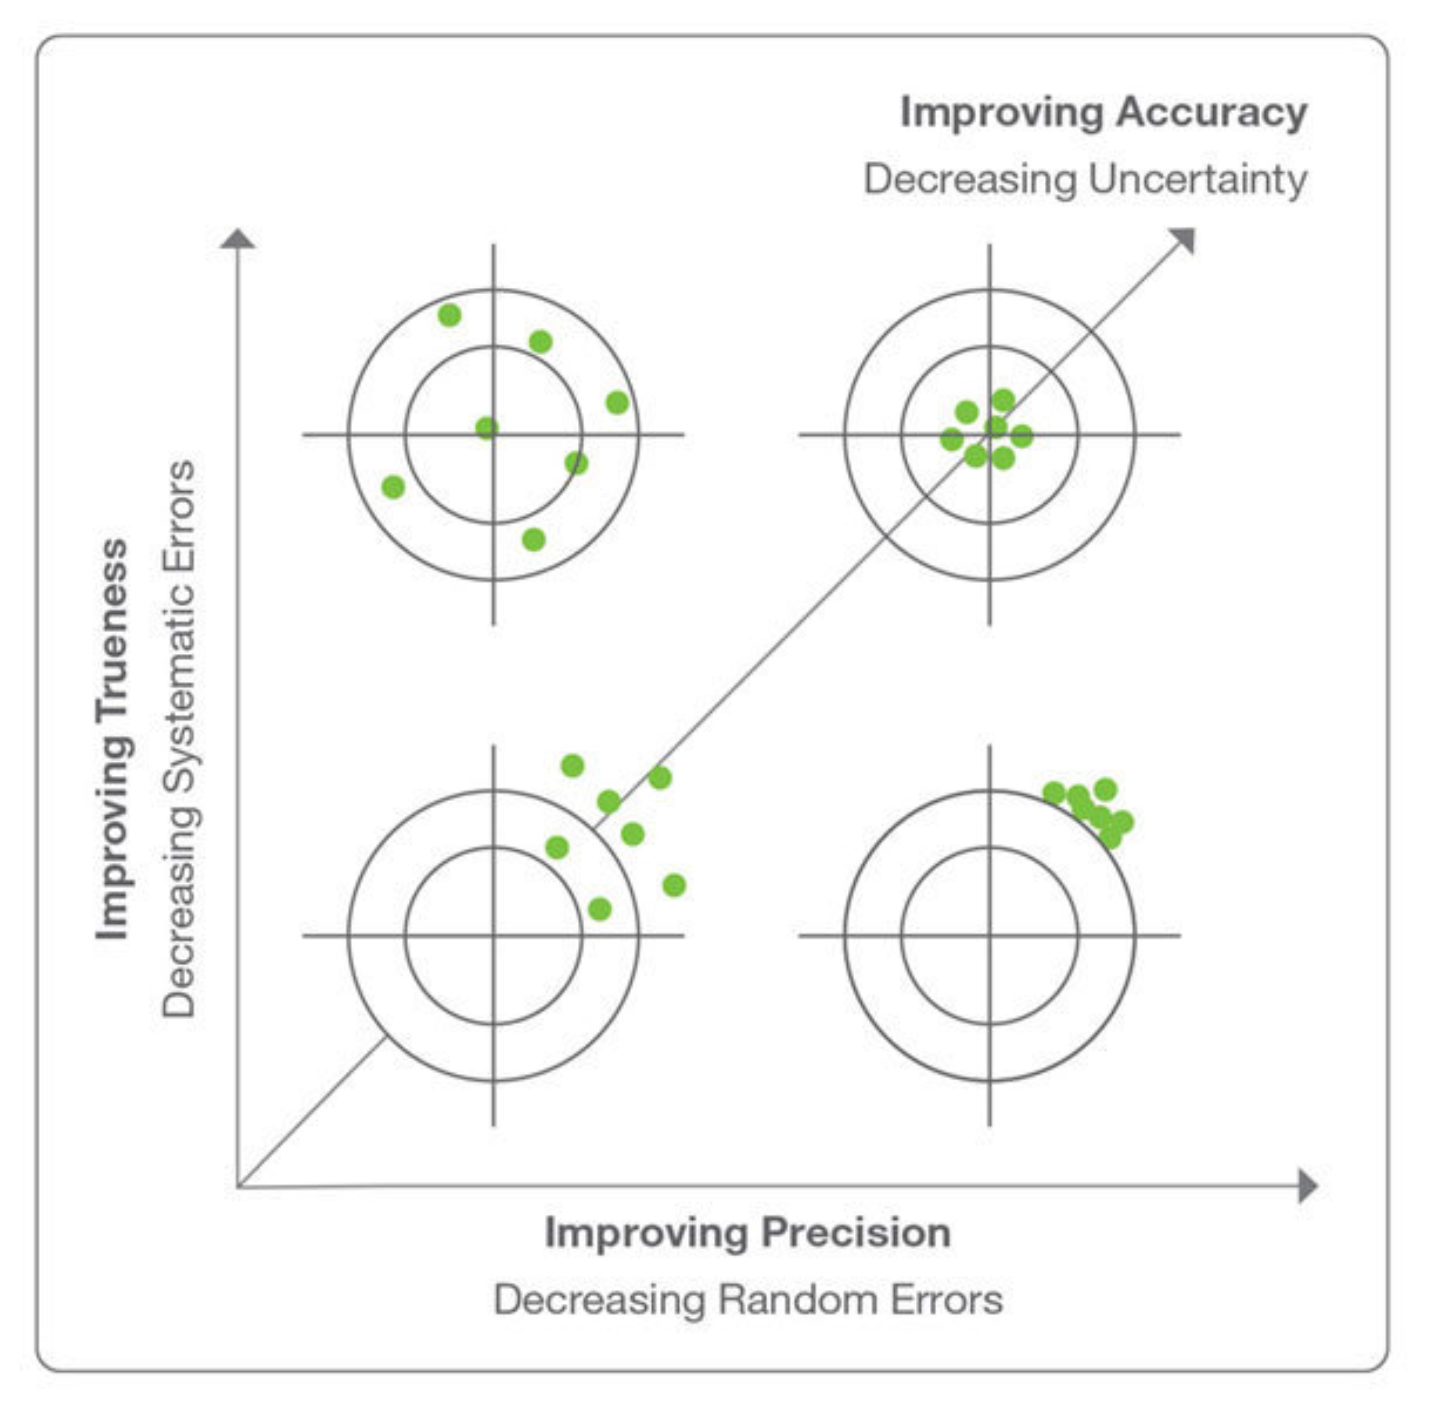 ISA IWA 15 accuracy relationship model between trueness and precision